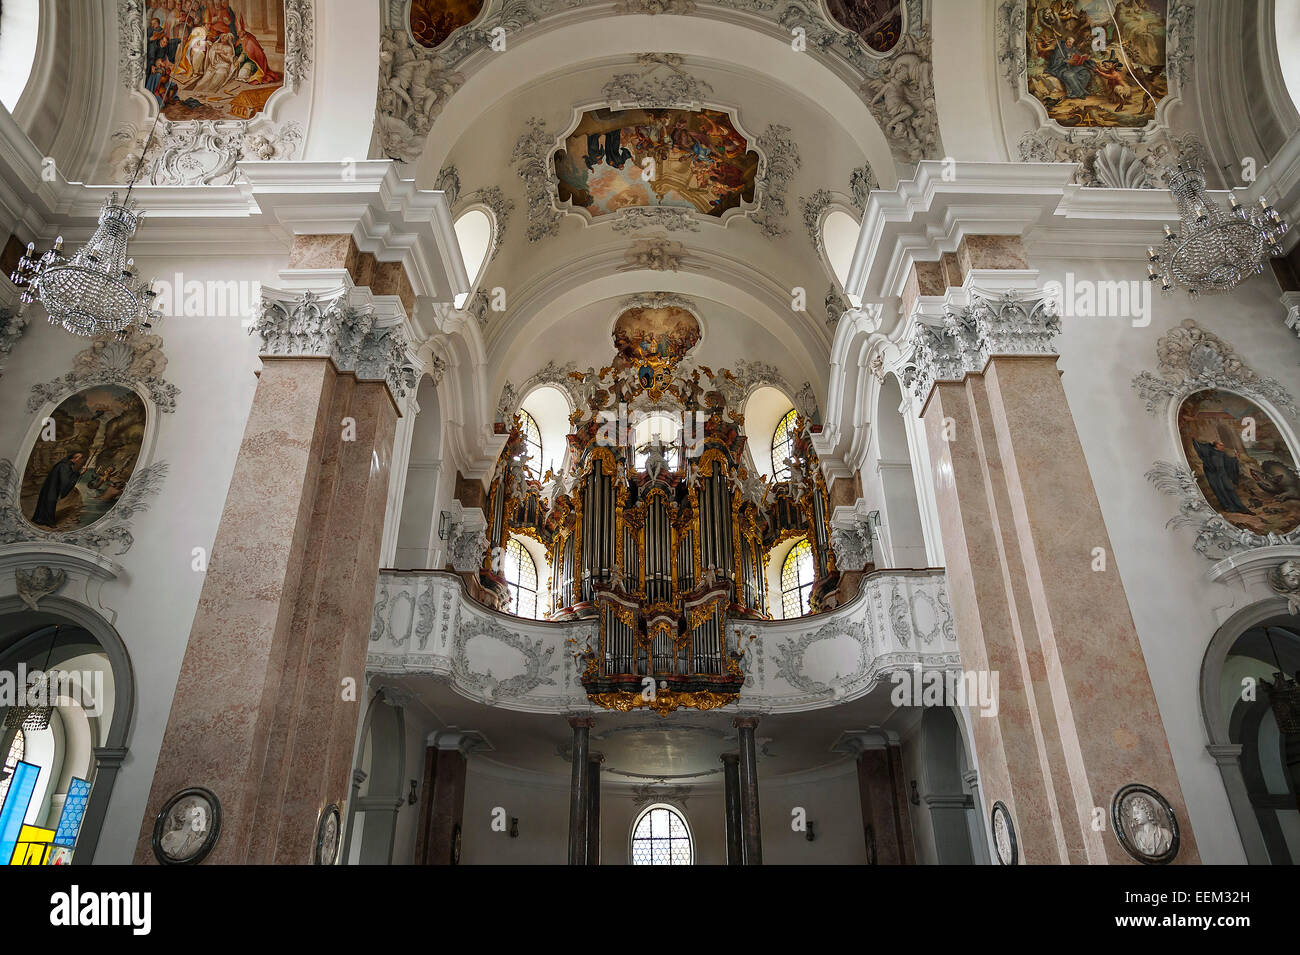 Organ loft, parish church of St. Mang, Füssen, Bavaria, Germany - Stock Image